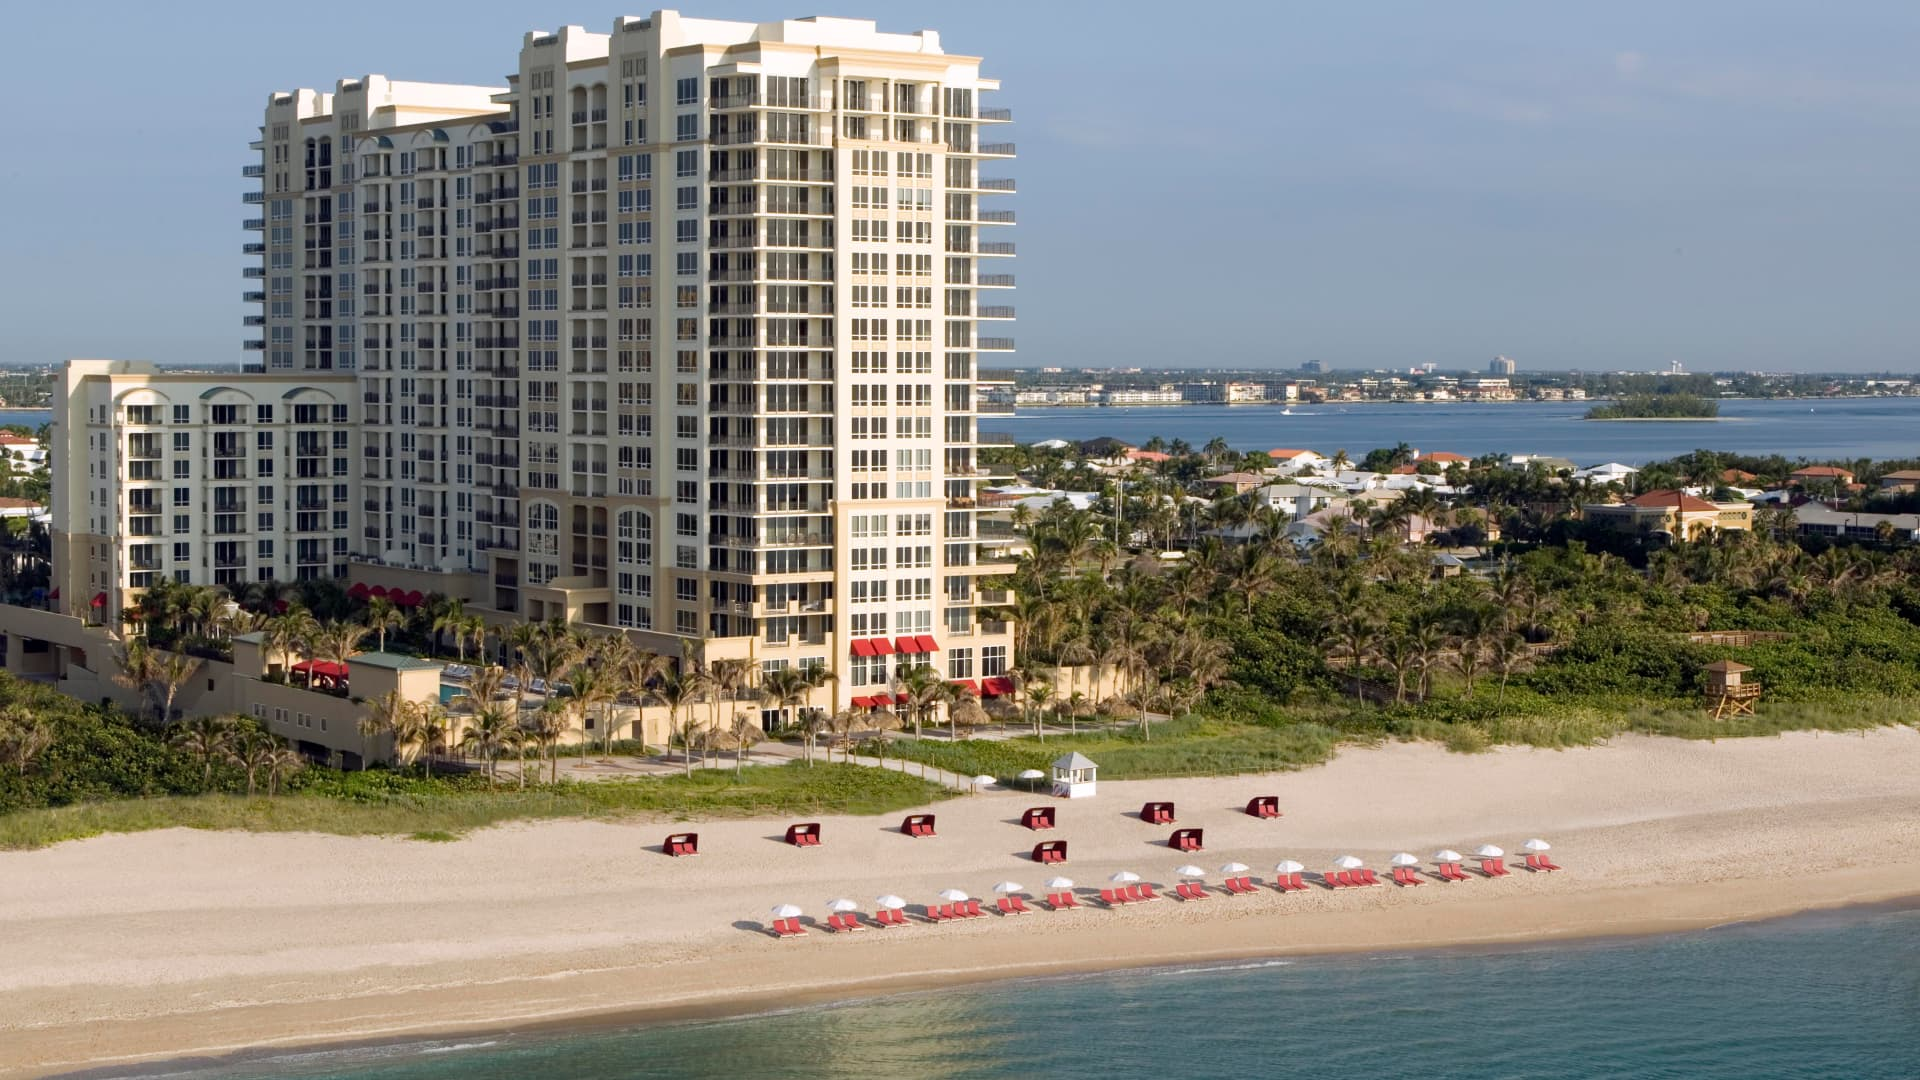 Florida's Palm Beach Marriott Singer Island Beach Resort & Spa is nearly fully booked for the Christmas holidays, according to the hotel.